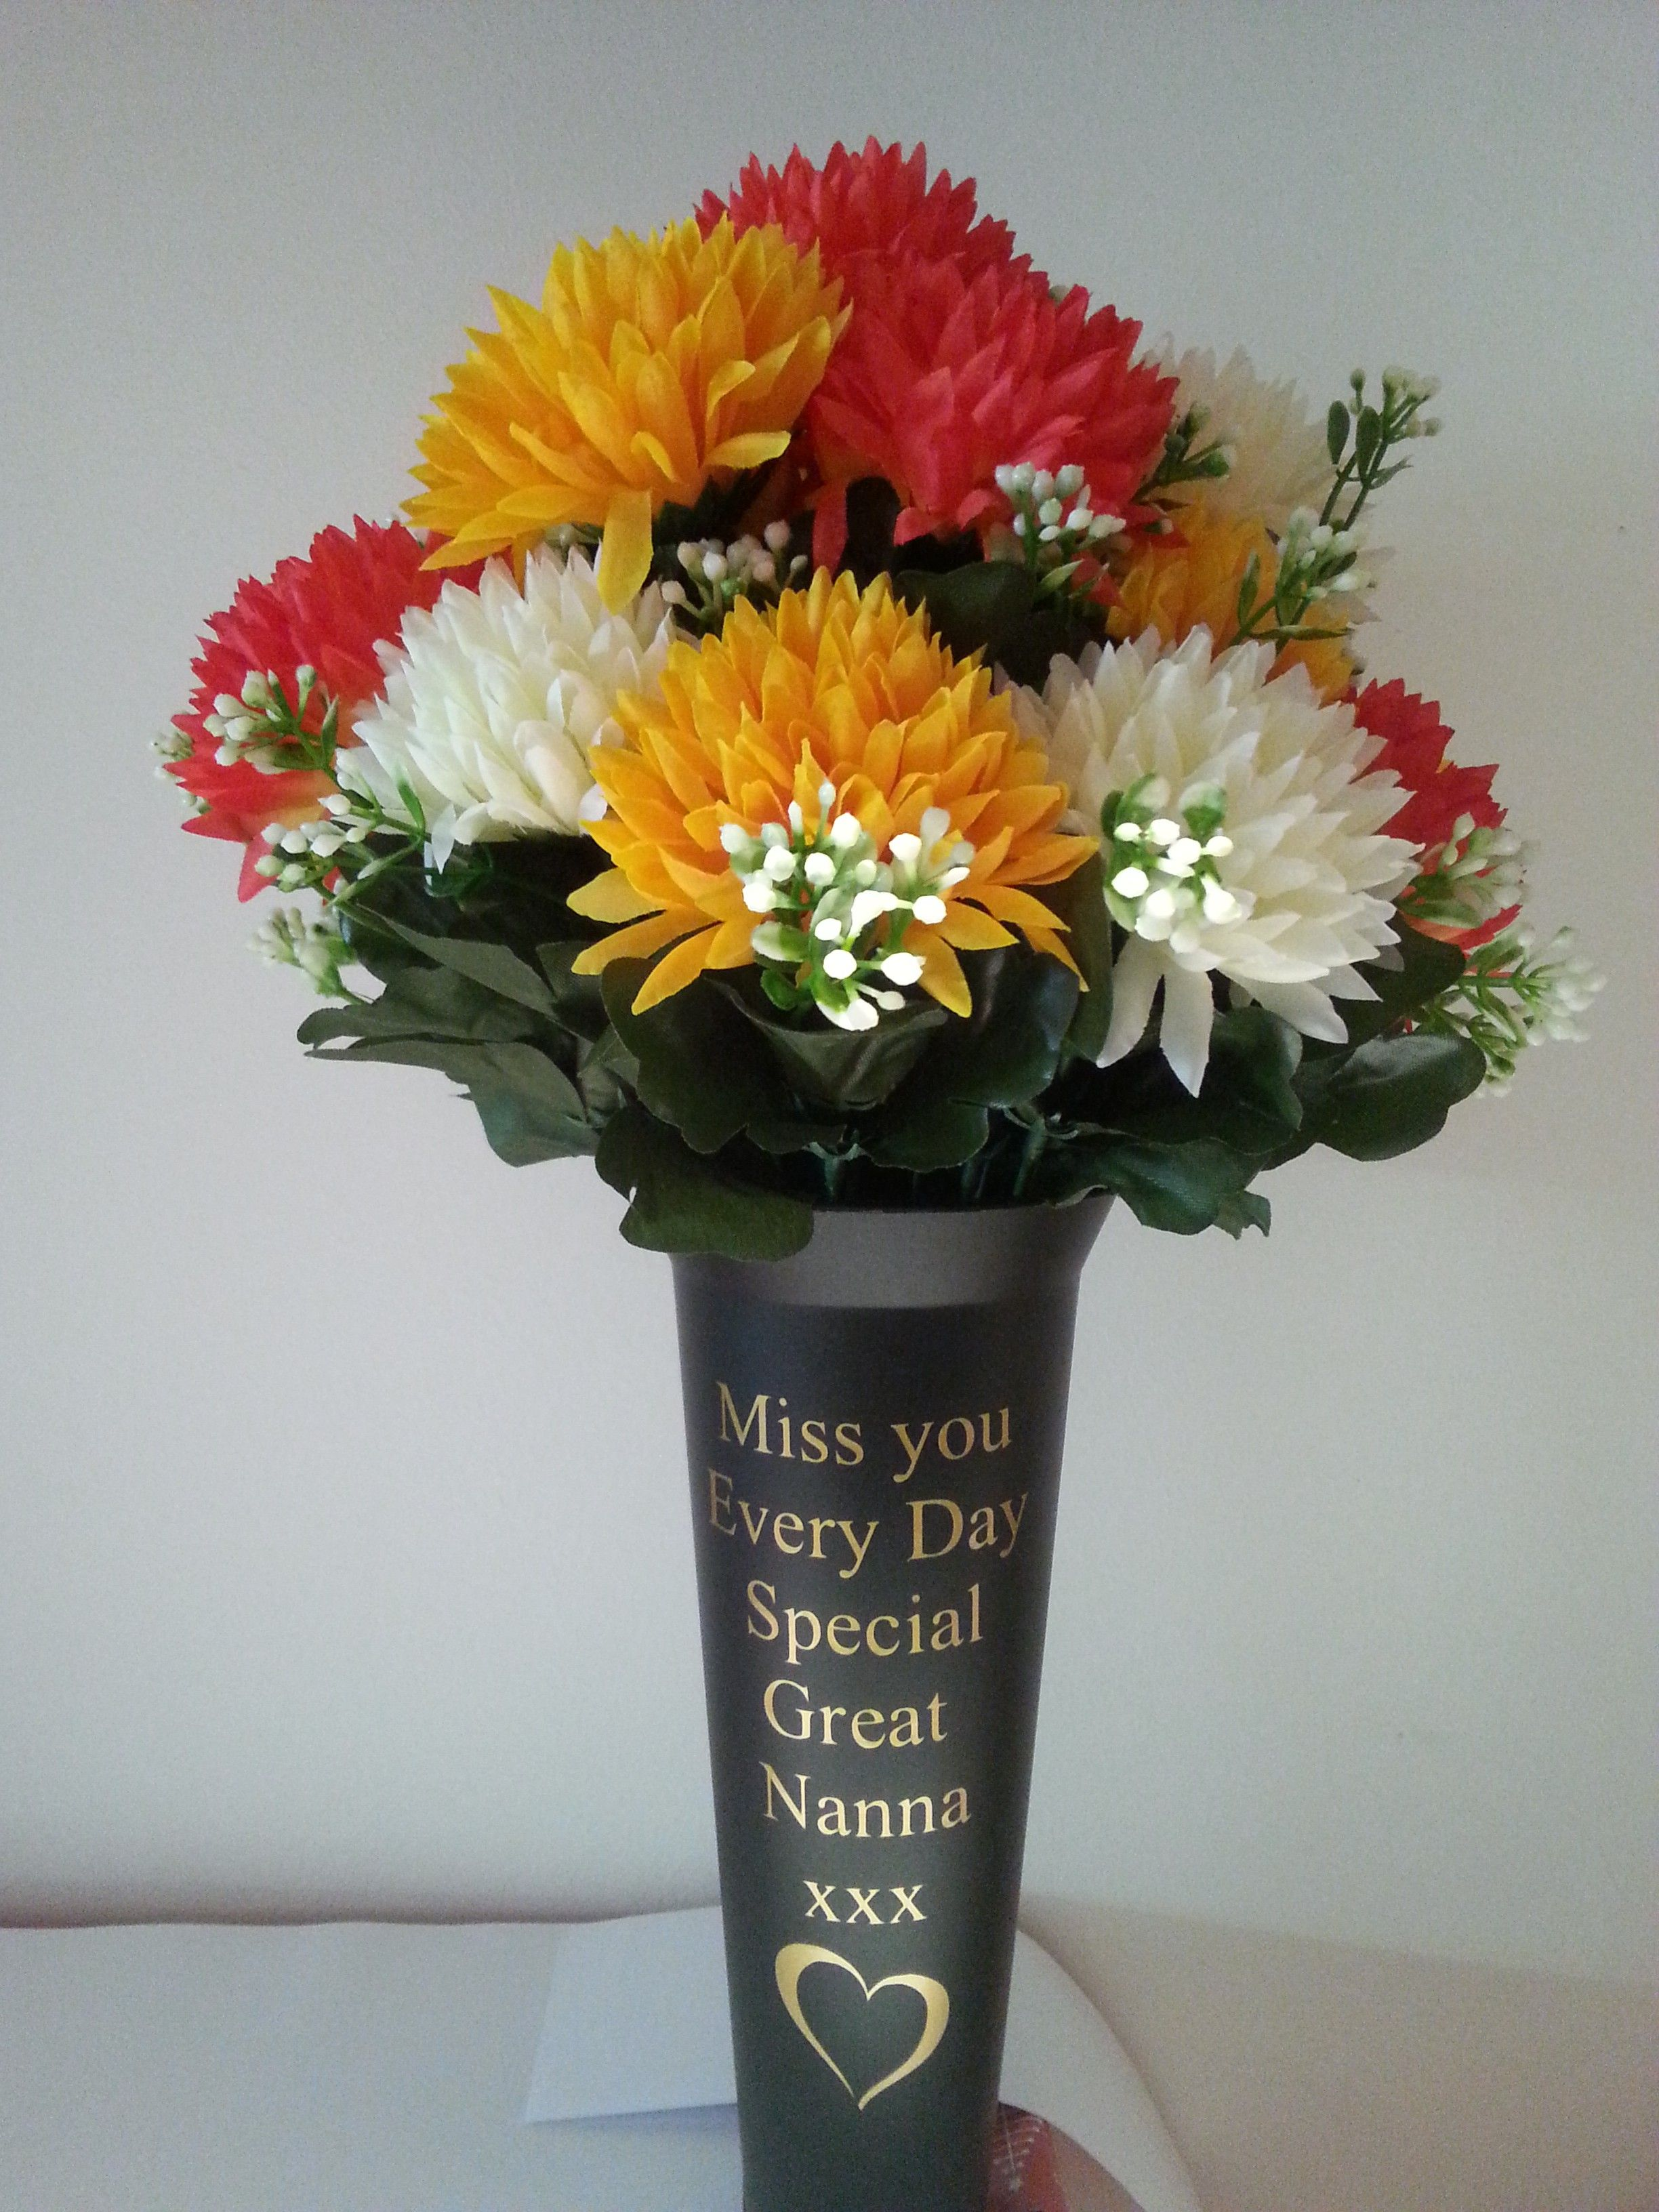 products of cemetery s vases decorations flower vase r memorial